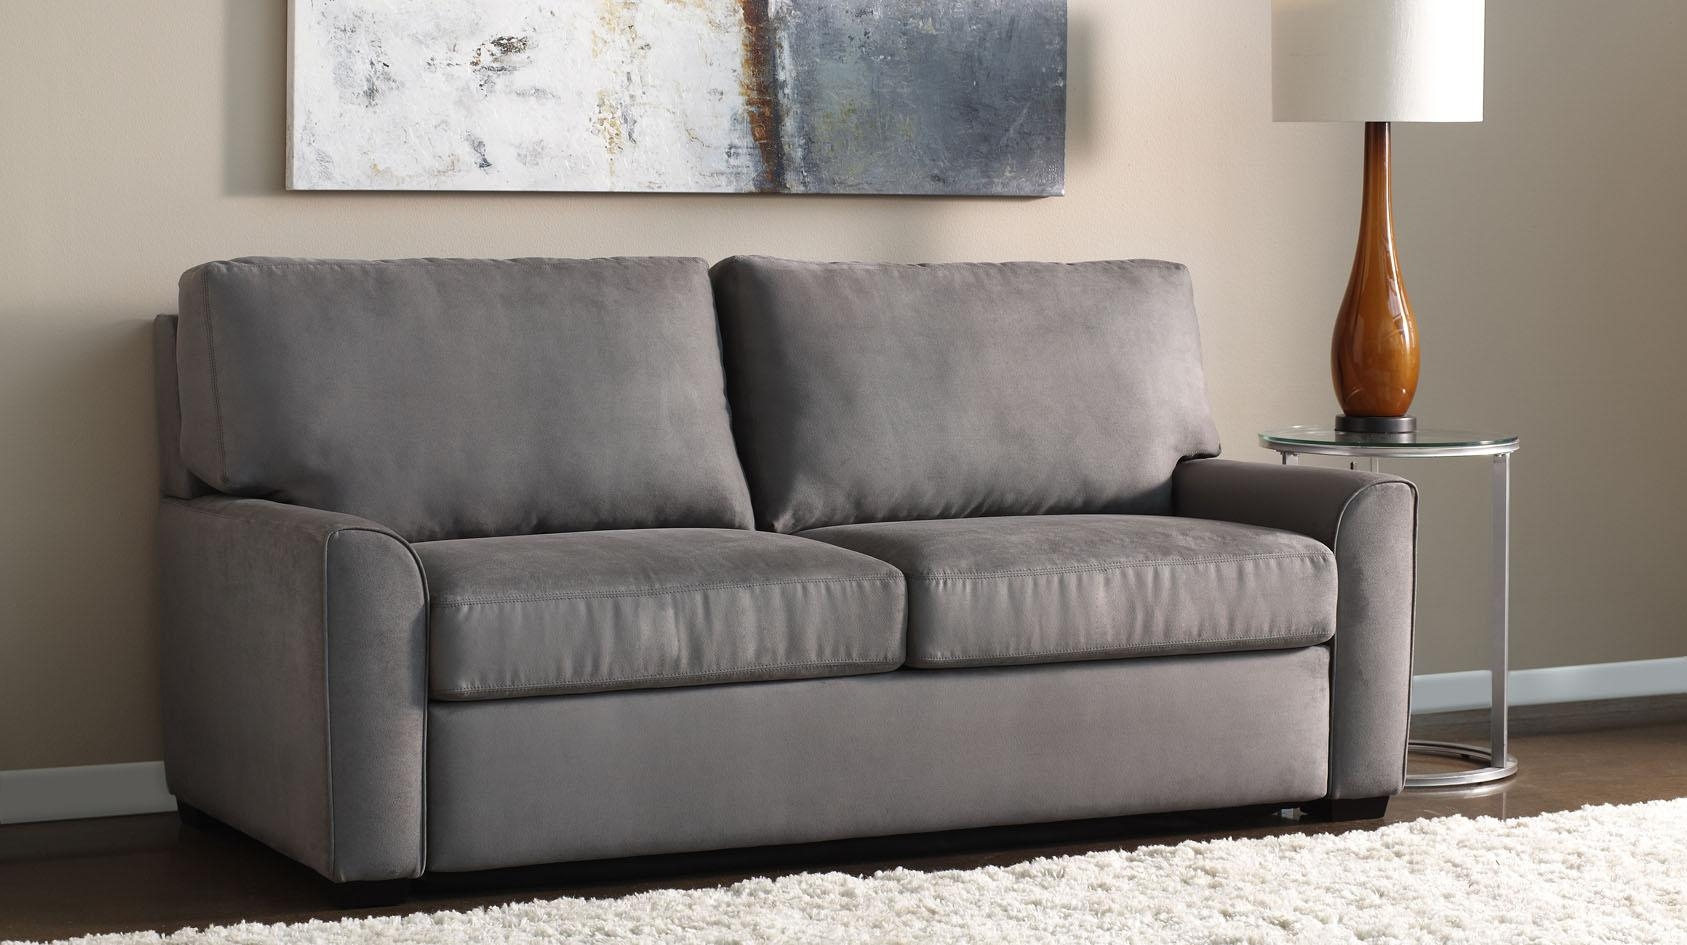 American Leather Ashton Comfort Sleeper | Living Room Sofas For Ashton Sofas (View 20 of 20)